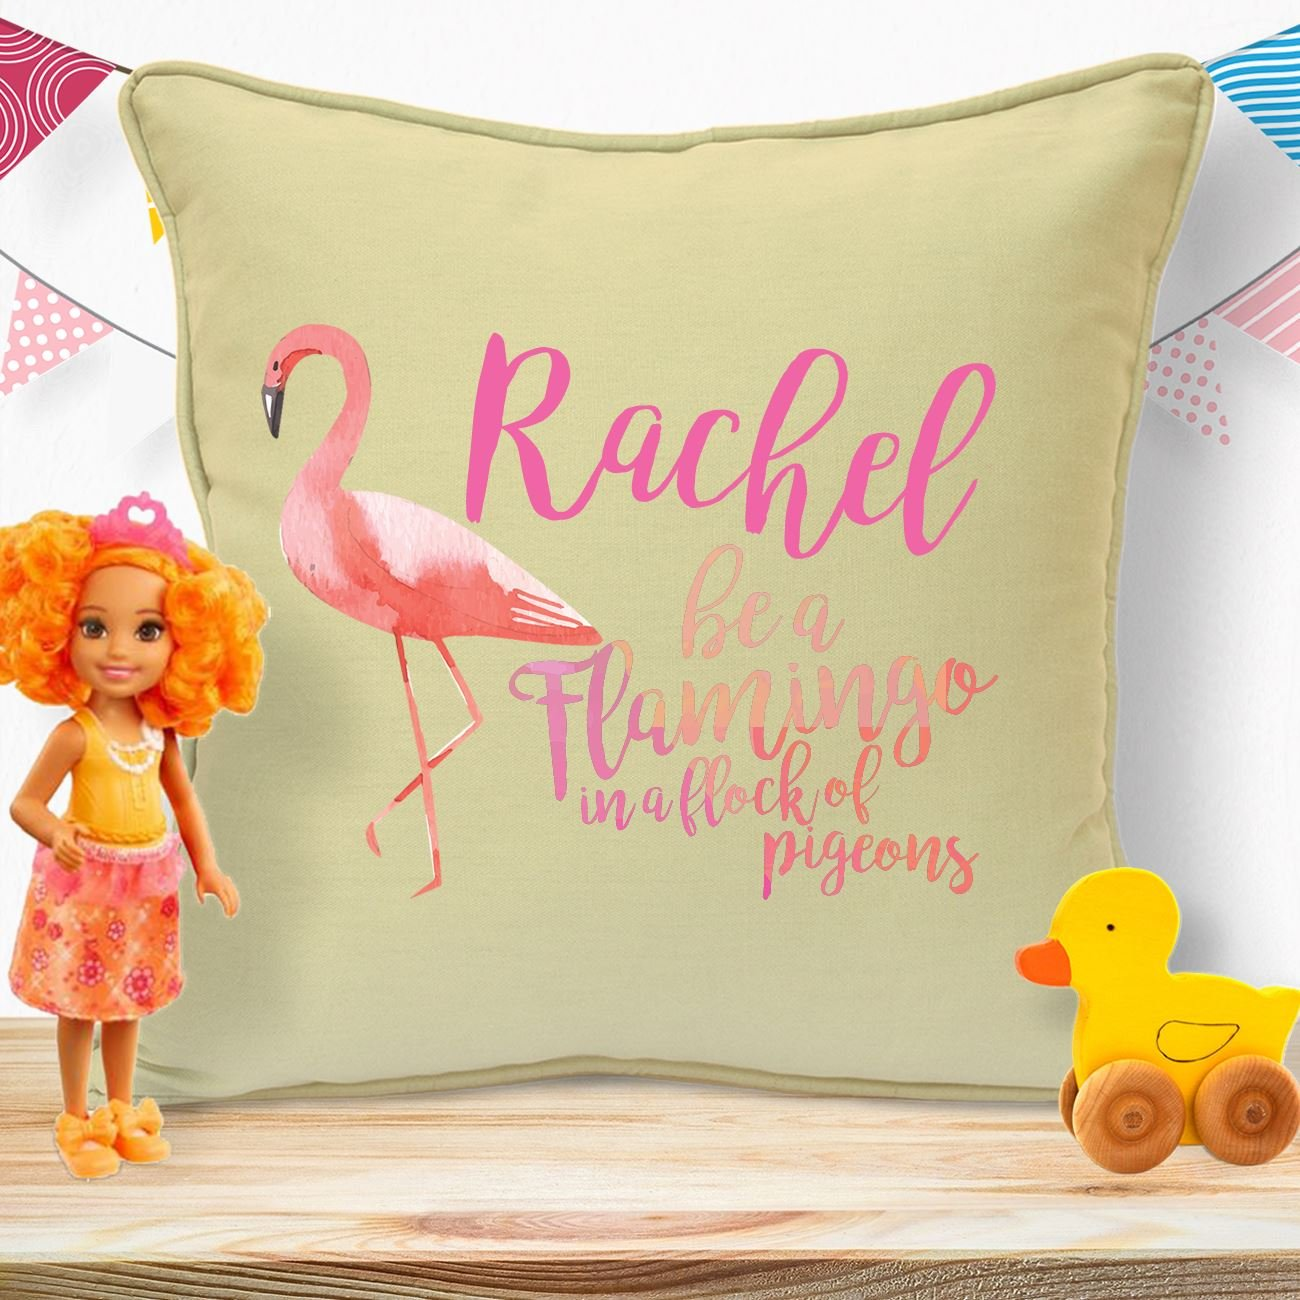 Personalised Gifts For Baby Girls Boys Kids Children Newborn Teens Birthday Christmas Xmas Christening From Auntie Grandma Big Sister To Niece Nephew Granddaughter Grandson Be A Flamingo Cushion